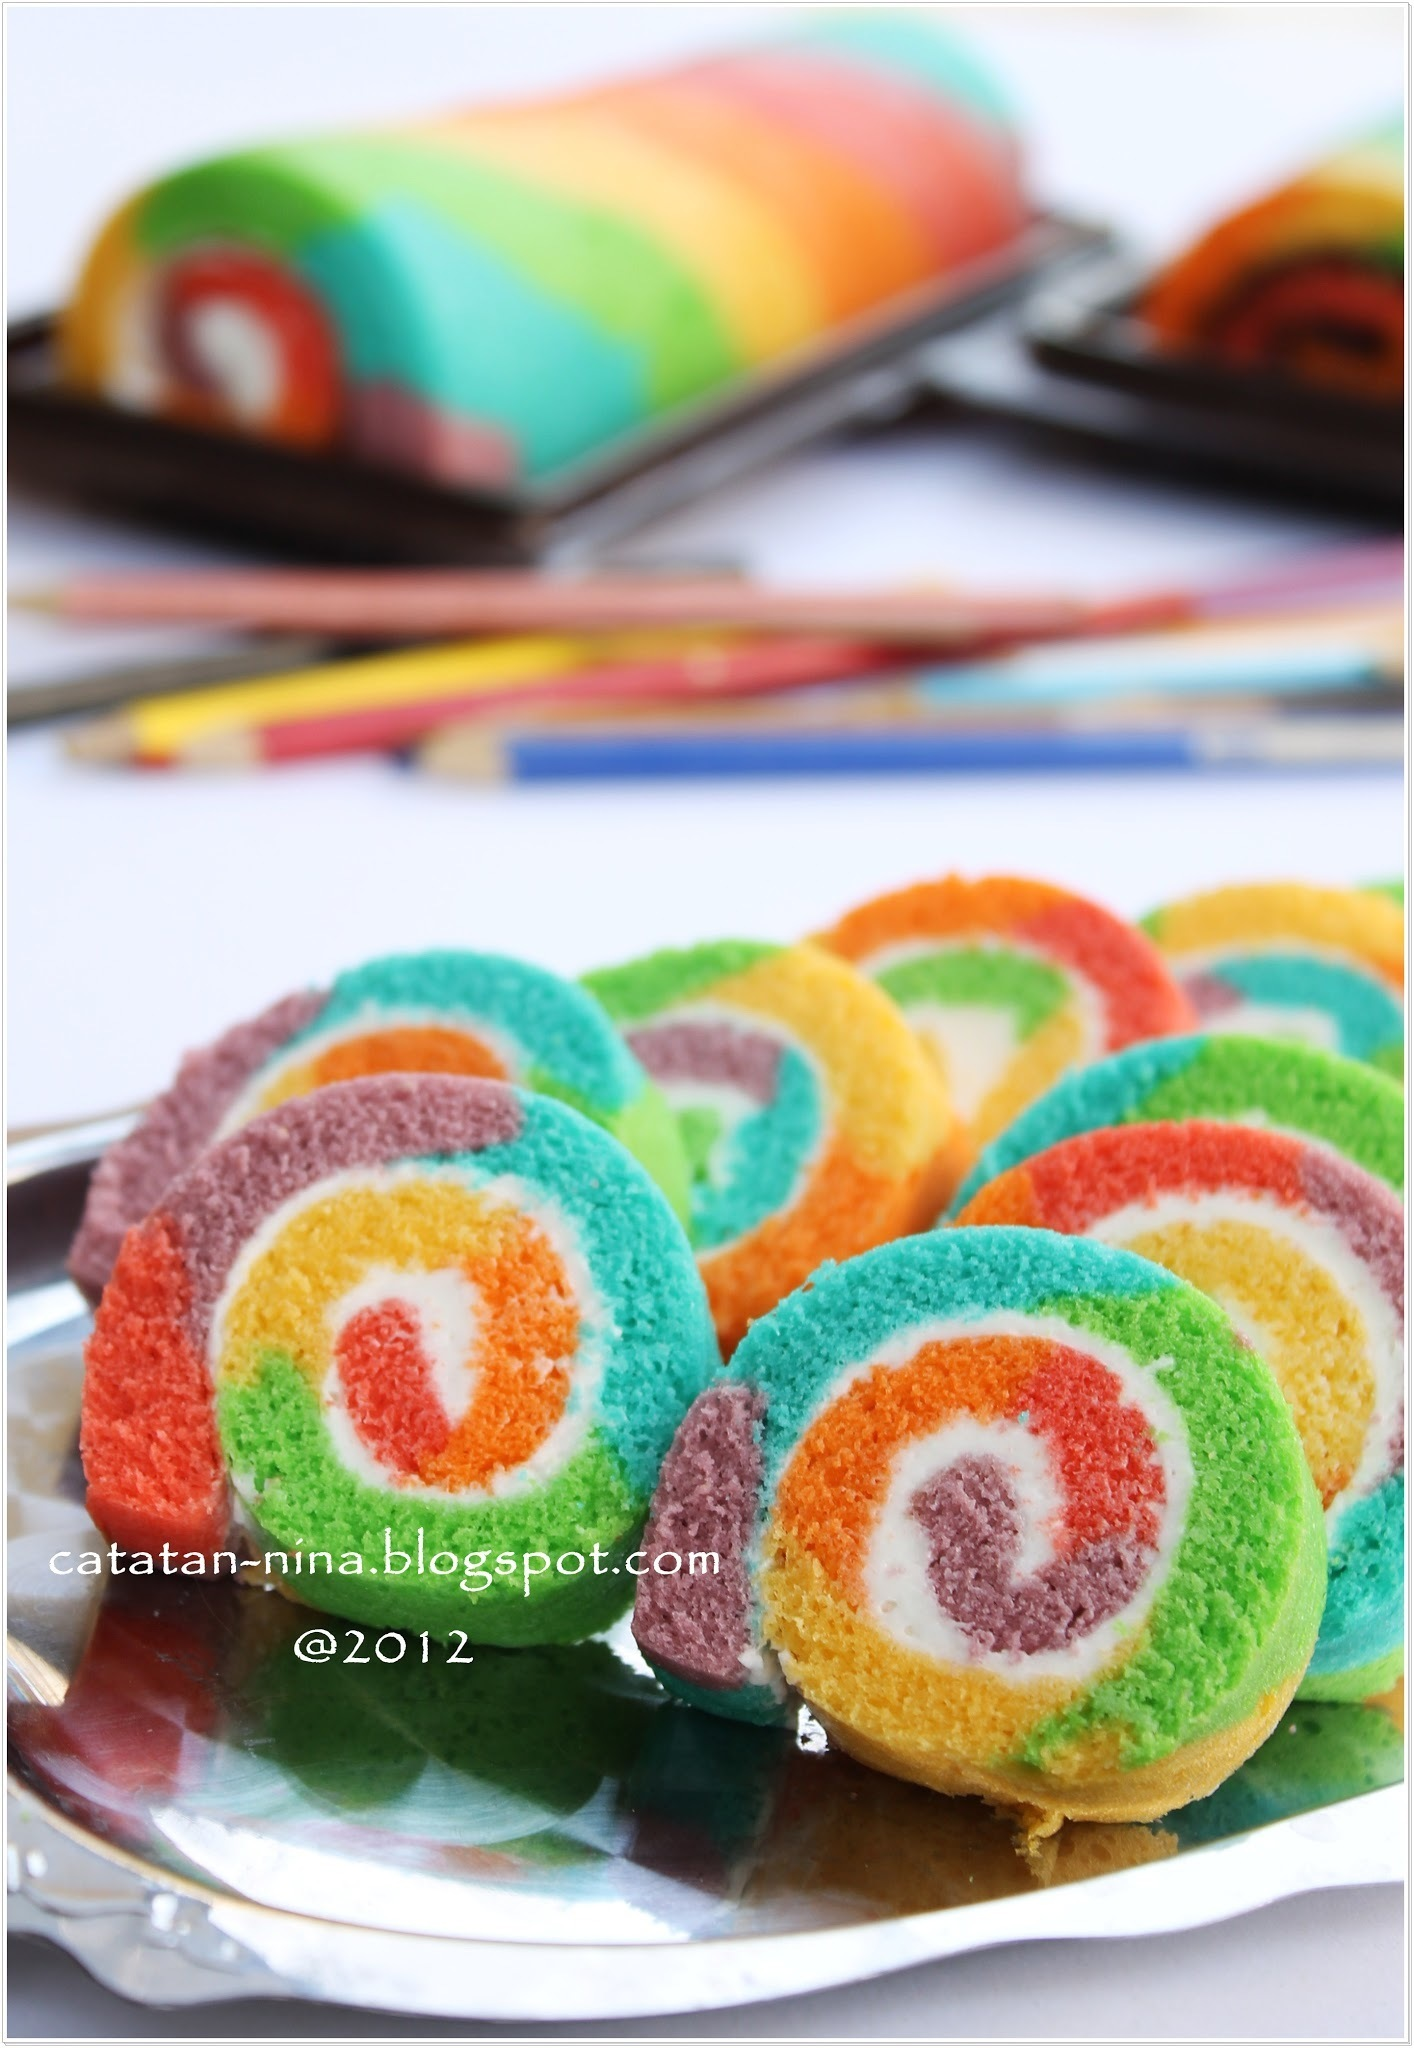 RAINBOW ROLL CAKE PART II